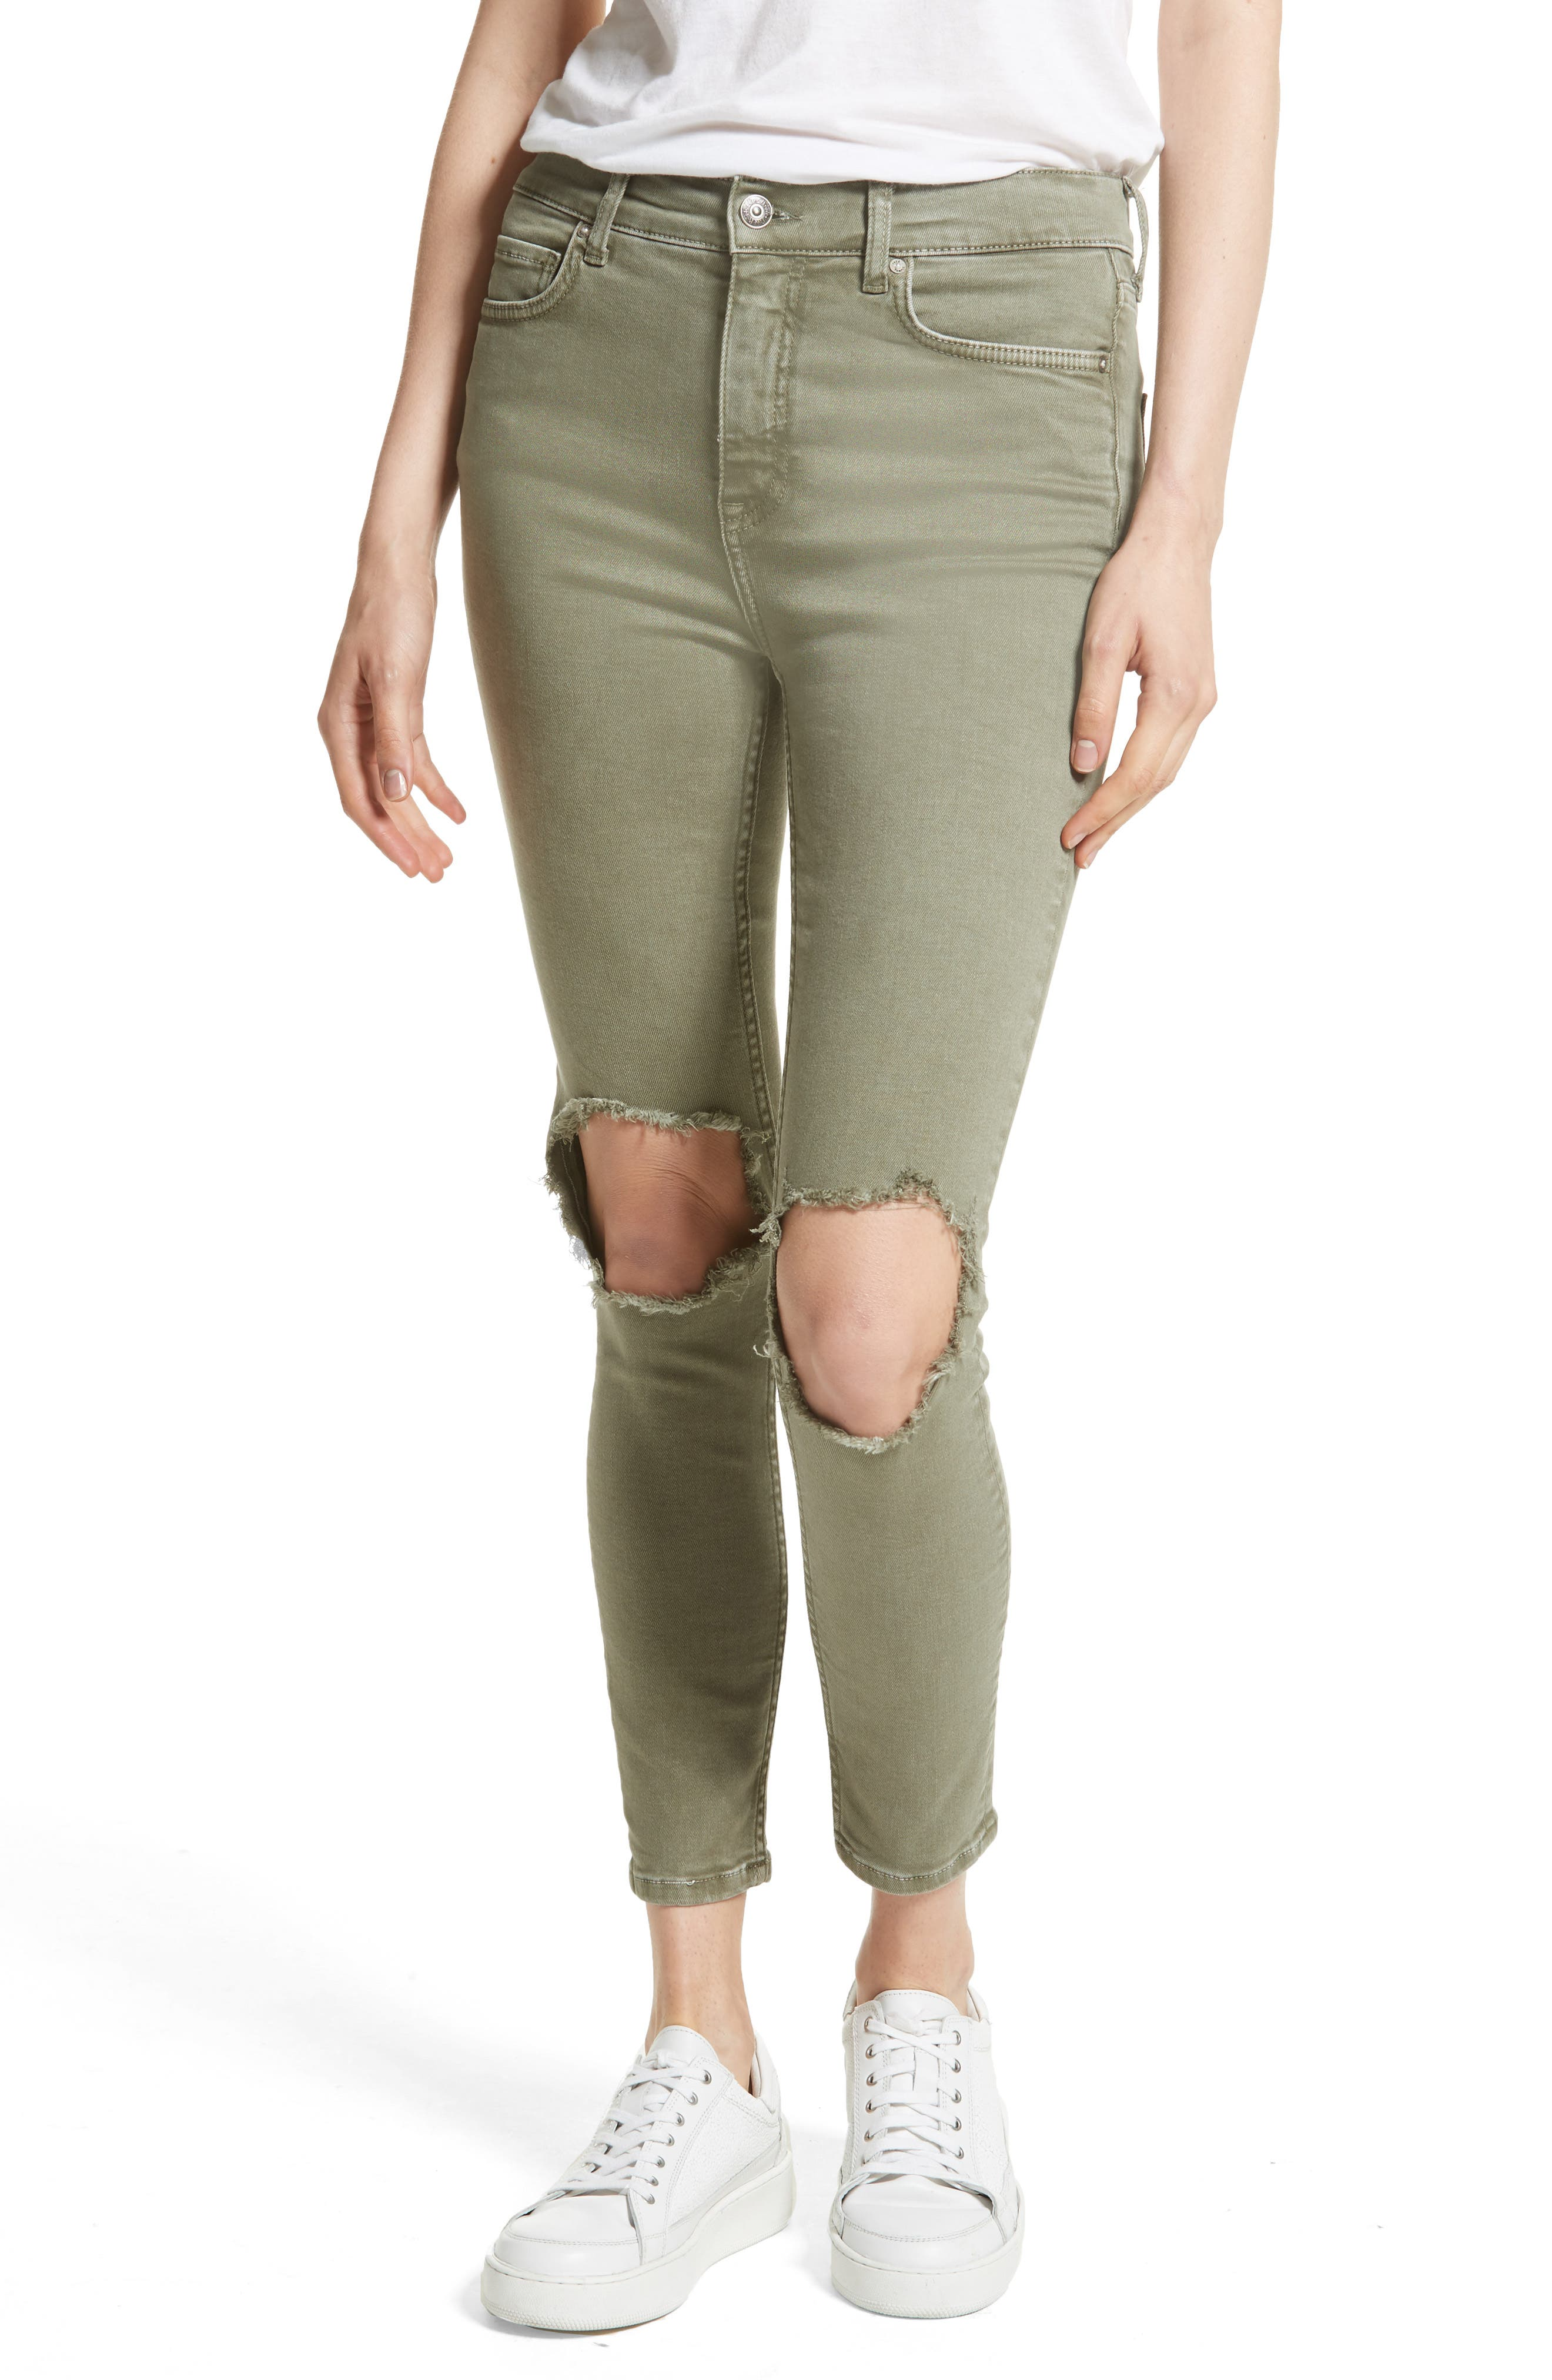 FREE PEOPLE, We the Free by Free People High Rise Busted Knee Skinny Jeans, Main thumbnail 1, color, 303